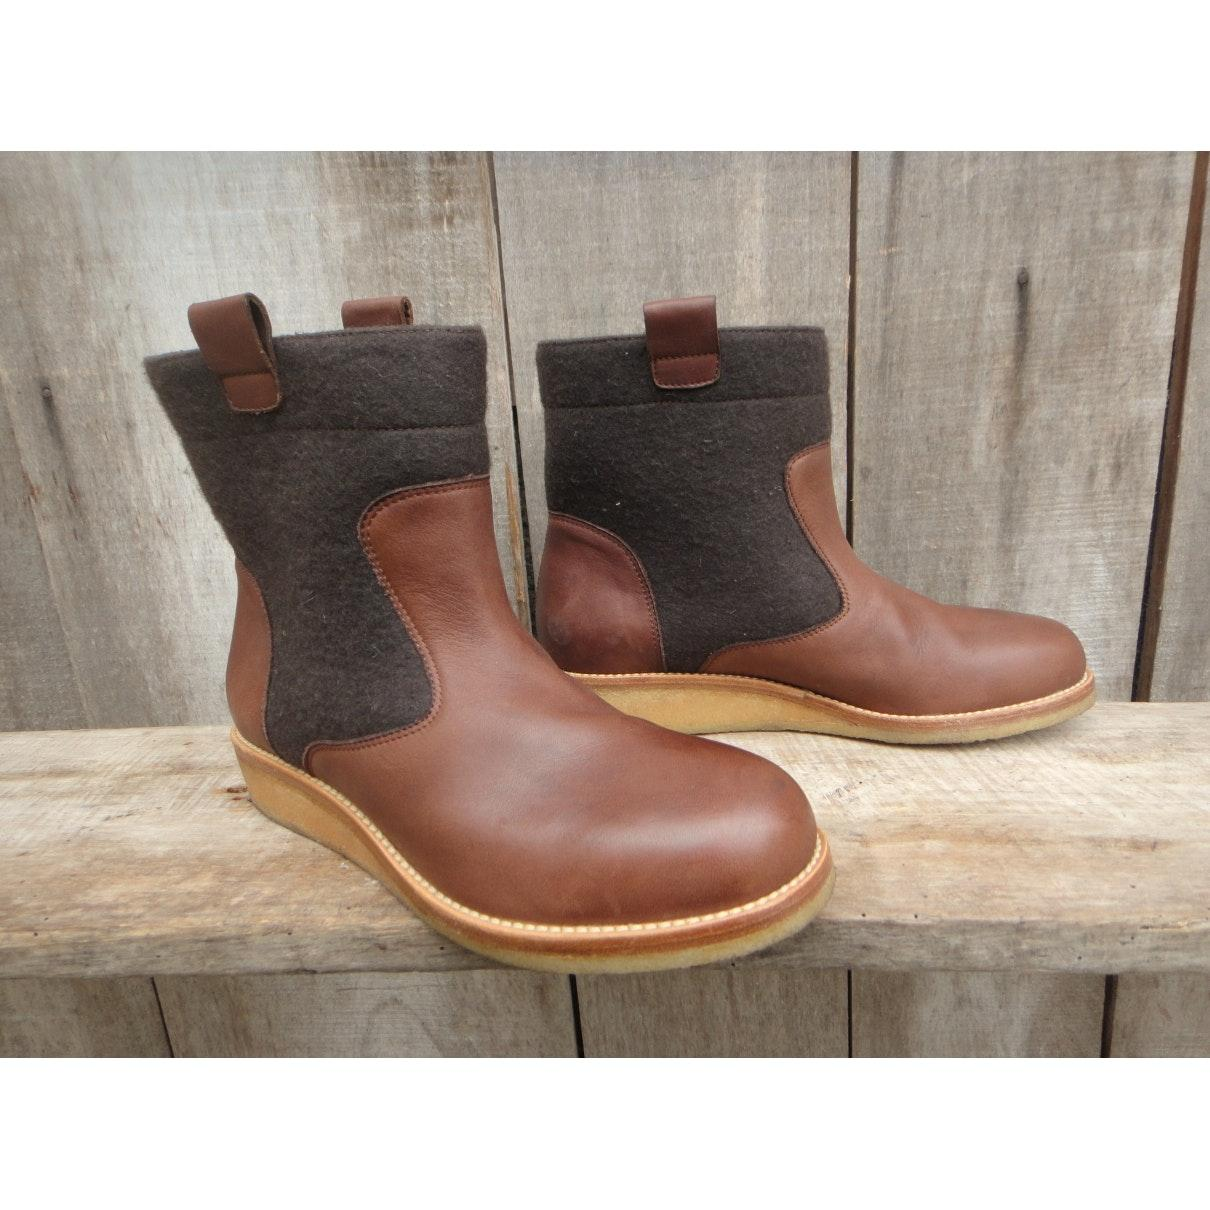 Maison Margiela n Brown Leather Ankle Boots